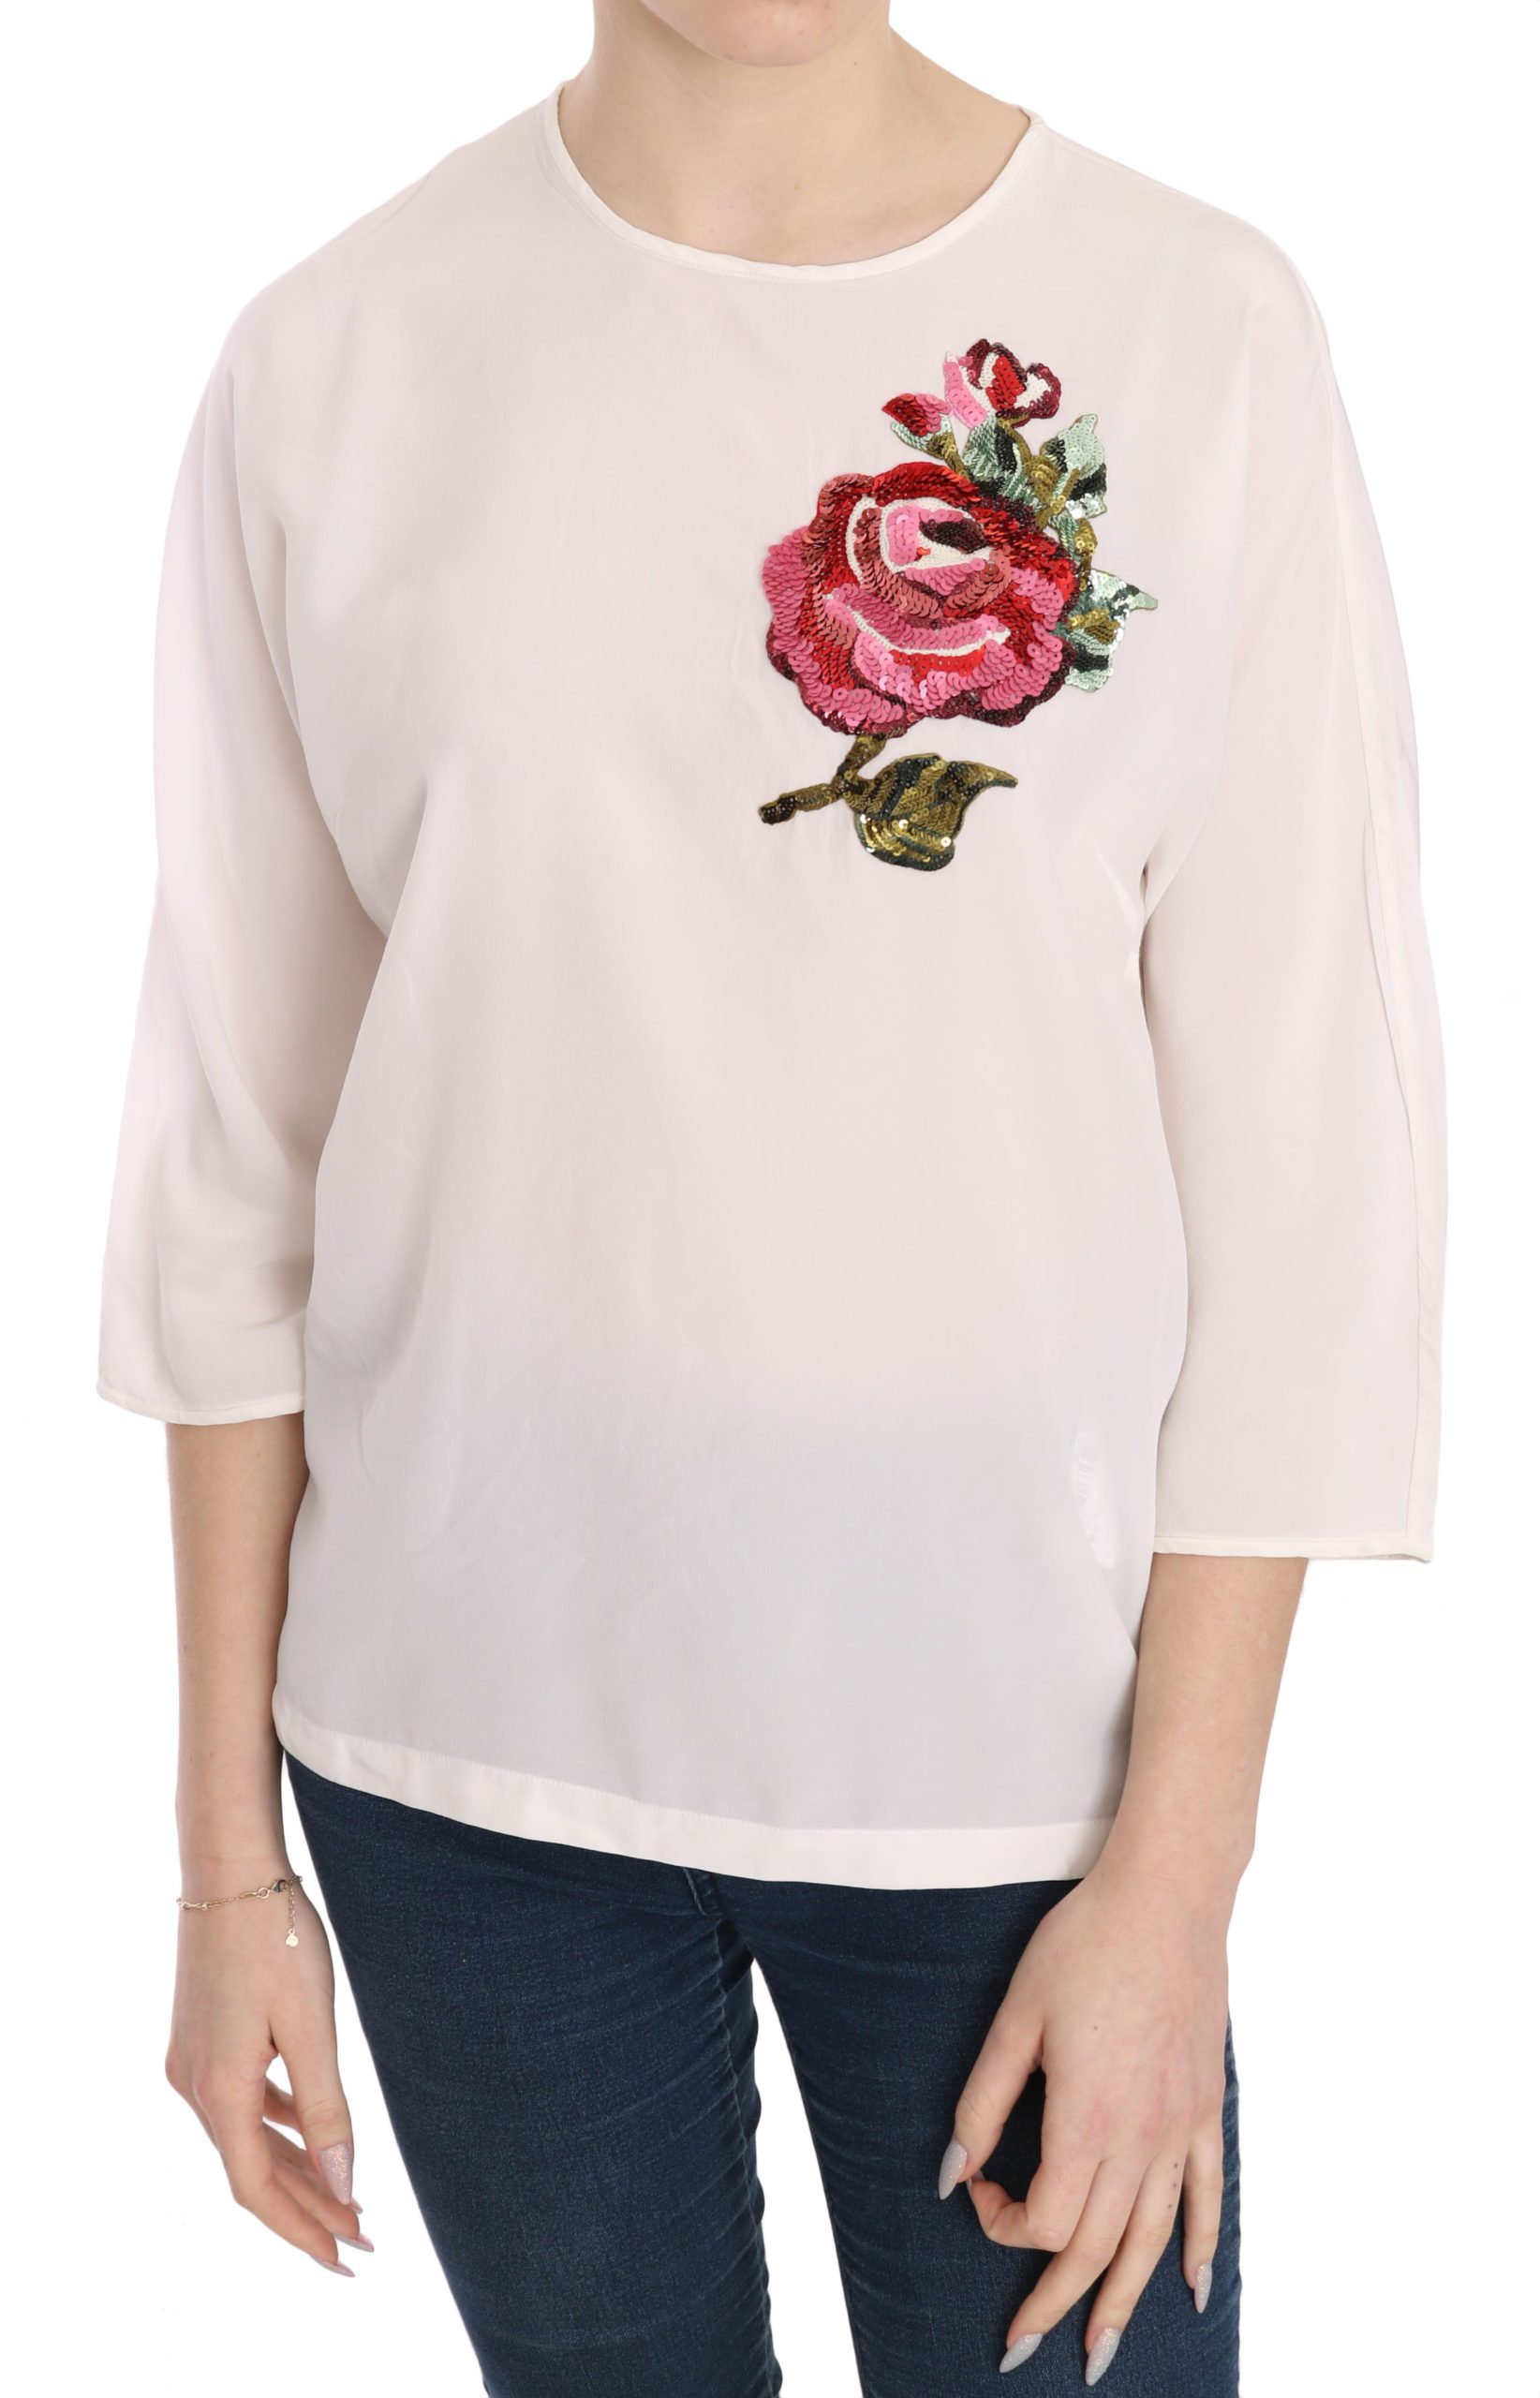 Dolce & Gabbana Women's Sequined Floral Top White TSH3653 - IT38|XS